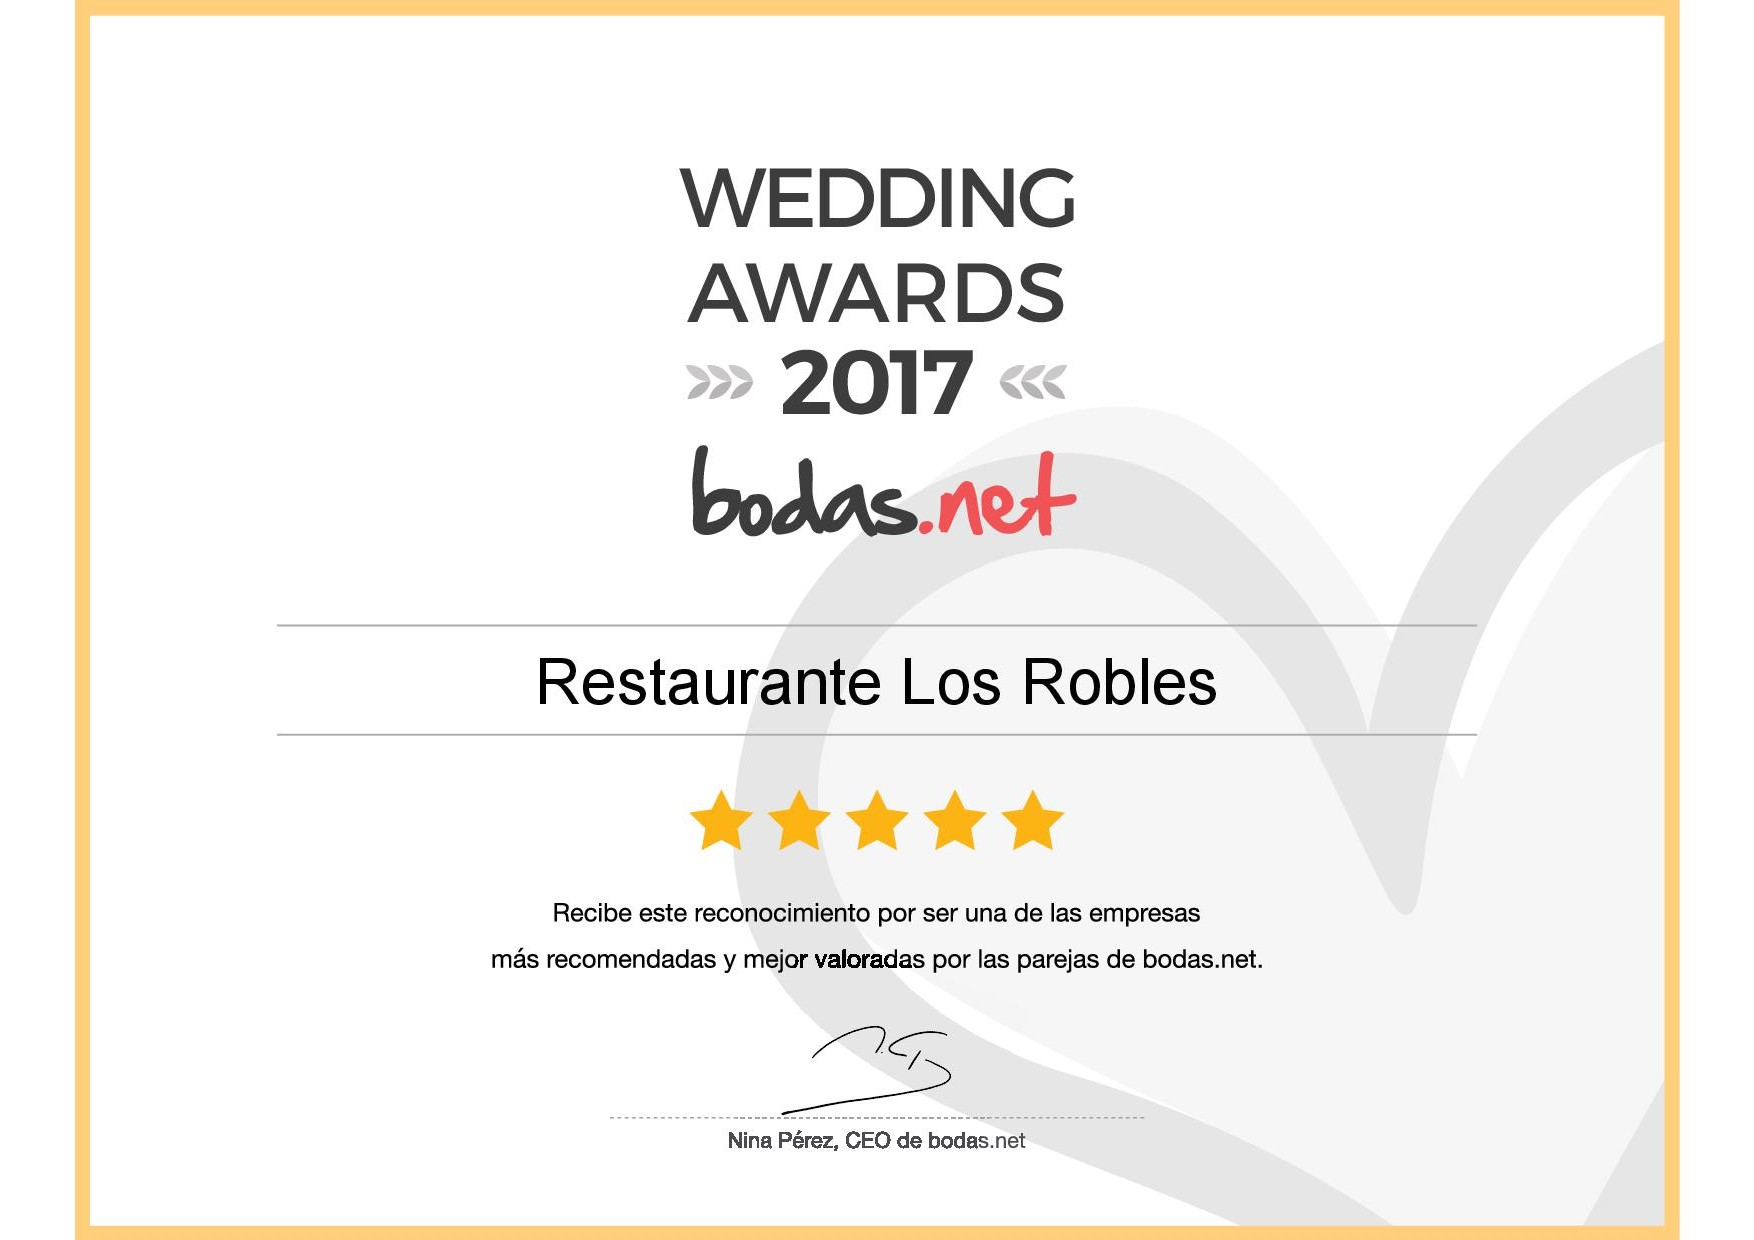 Restaurante Los Robles, ganador Wedding Awards 2016 bodas.net